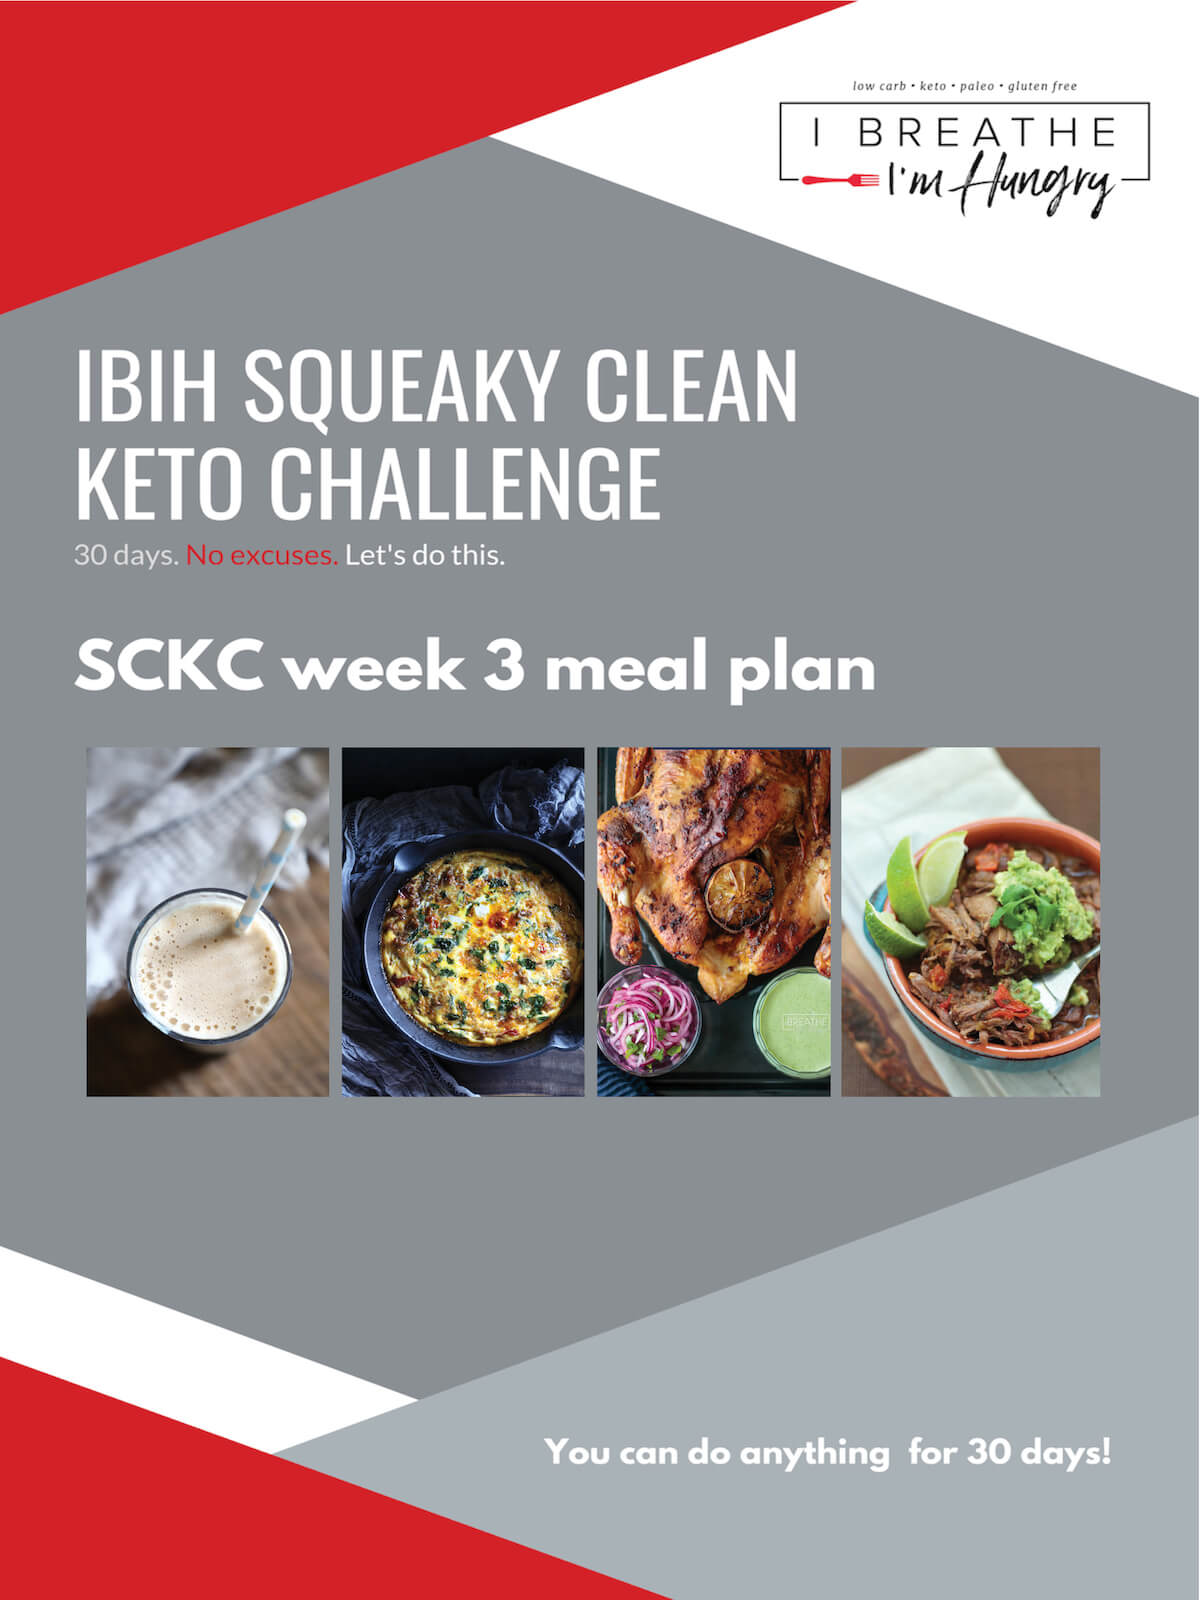 This Week 3 Squeaky Clean Keto Meal Plan is a customizable keto menu plan for the third week of the IBIH Squeaky Clean Keto Challenge (SCKC) – a 30 day clean eating keto diet plan designed to achieve better health and faster weight loss!  This dairy free menu plan also works for Keto Whole 30!